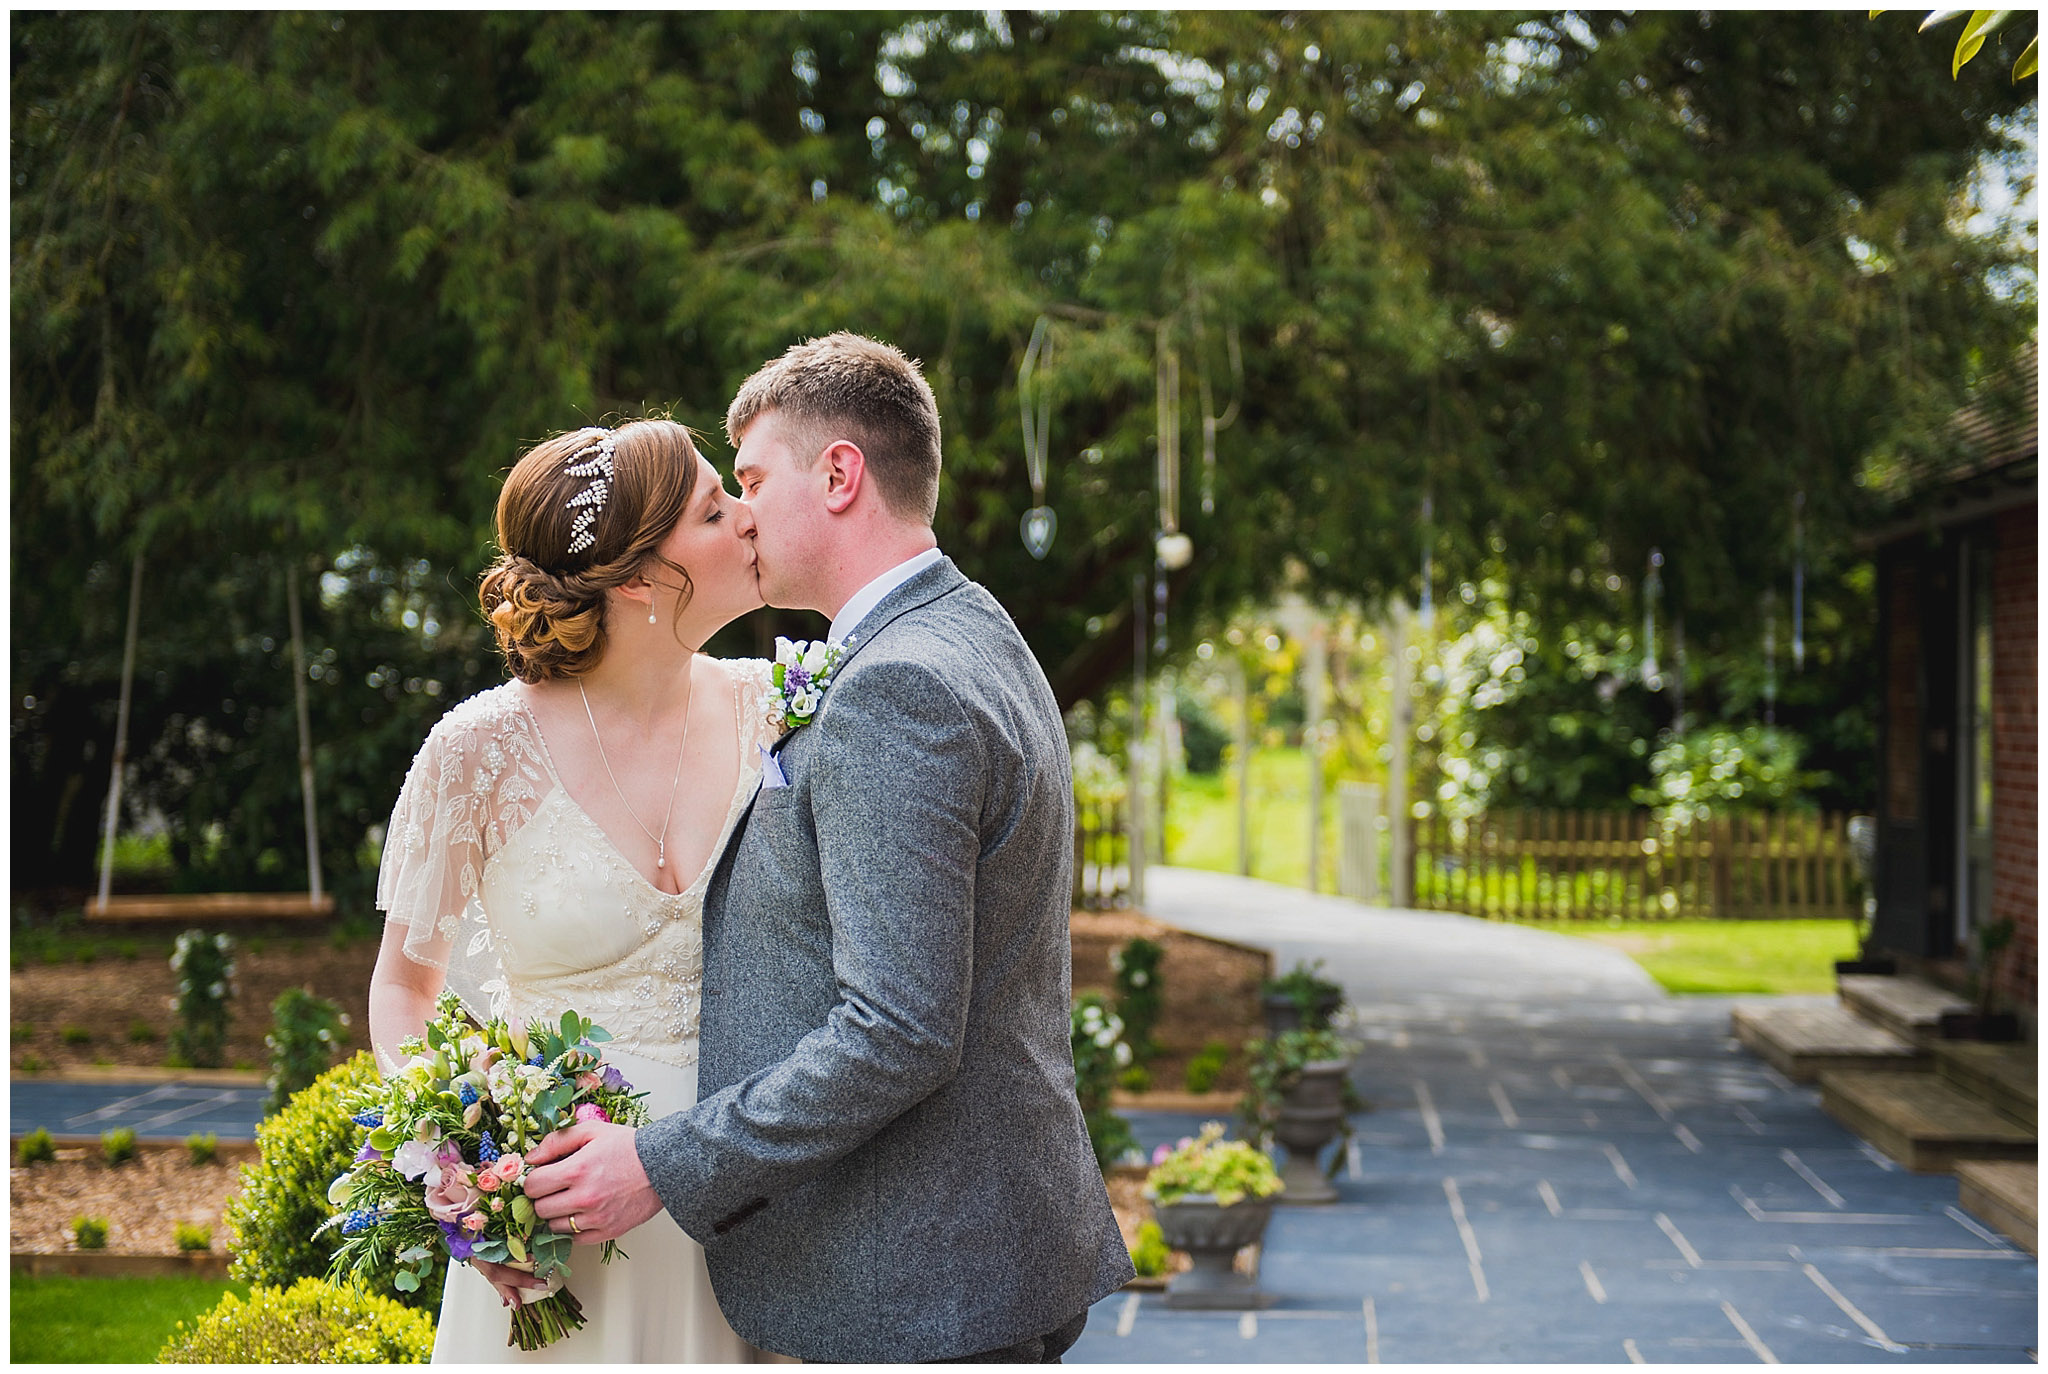 Sarah-&-Dan-The-Old-Vicarage-Wedding-Venue-Dorset-Photographer-24